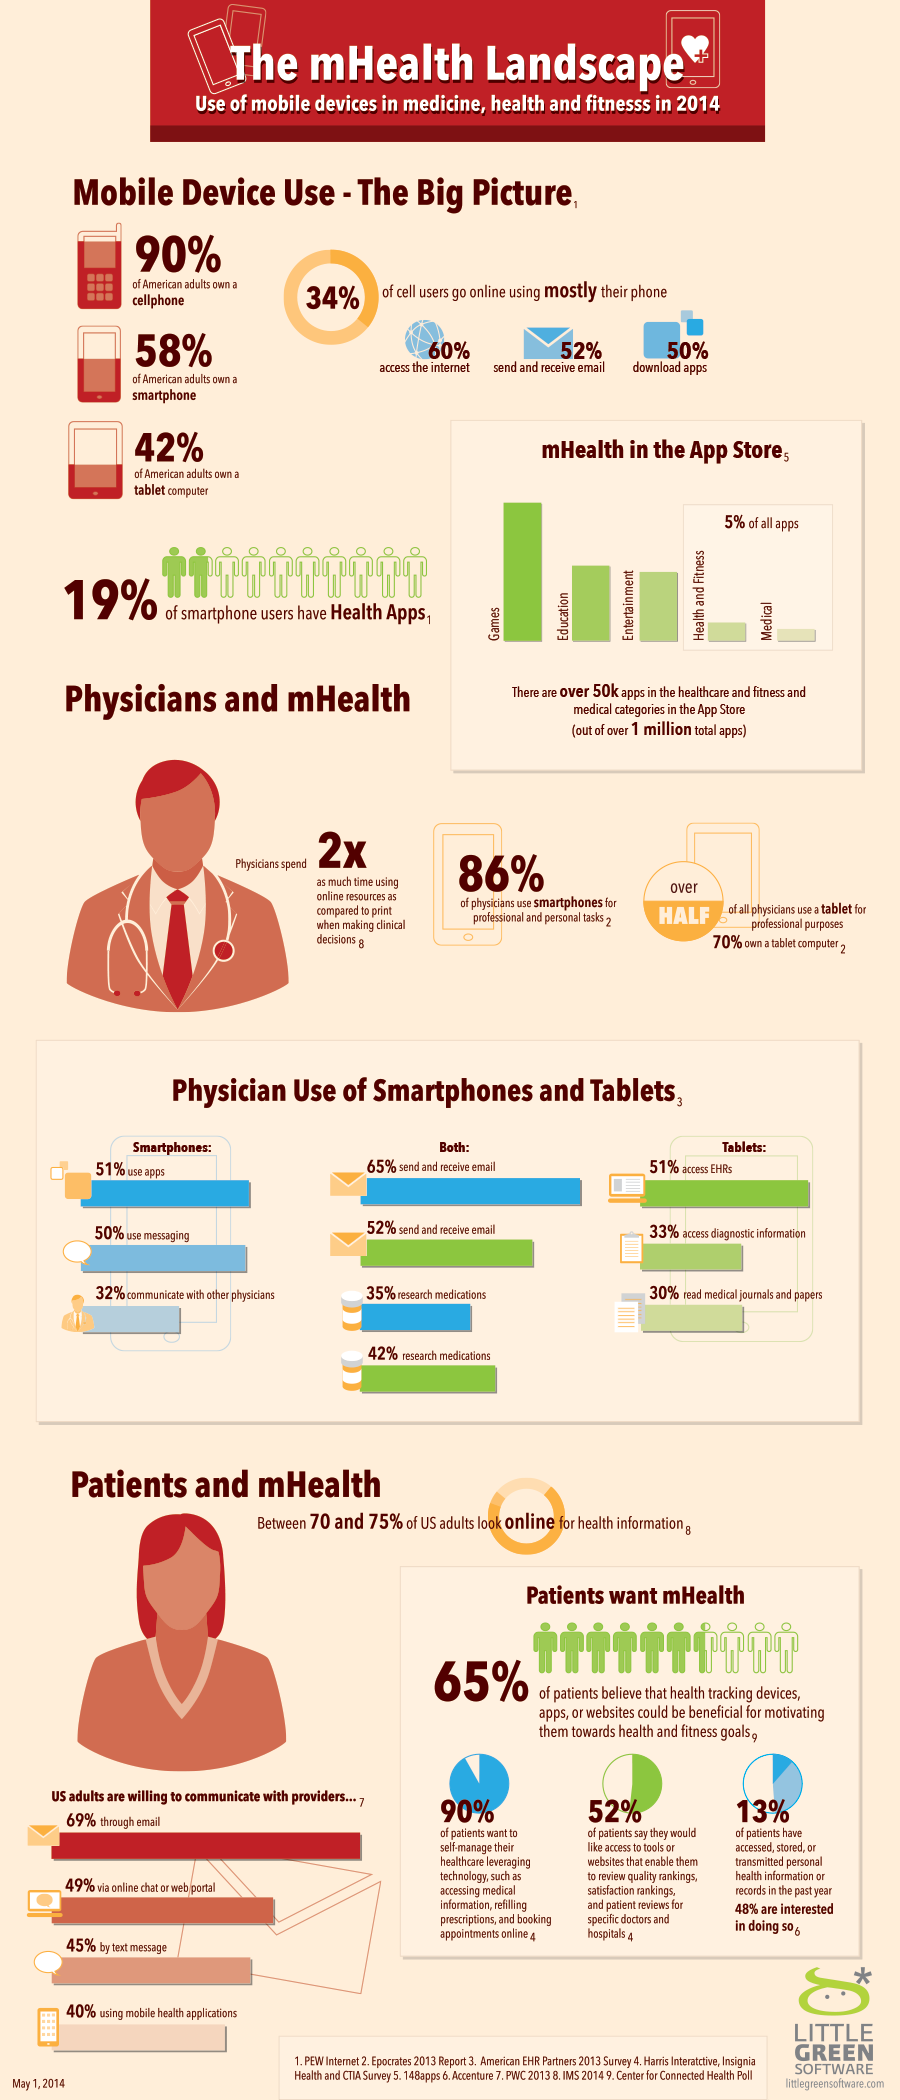 The mHealth Landscape